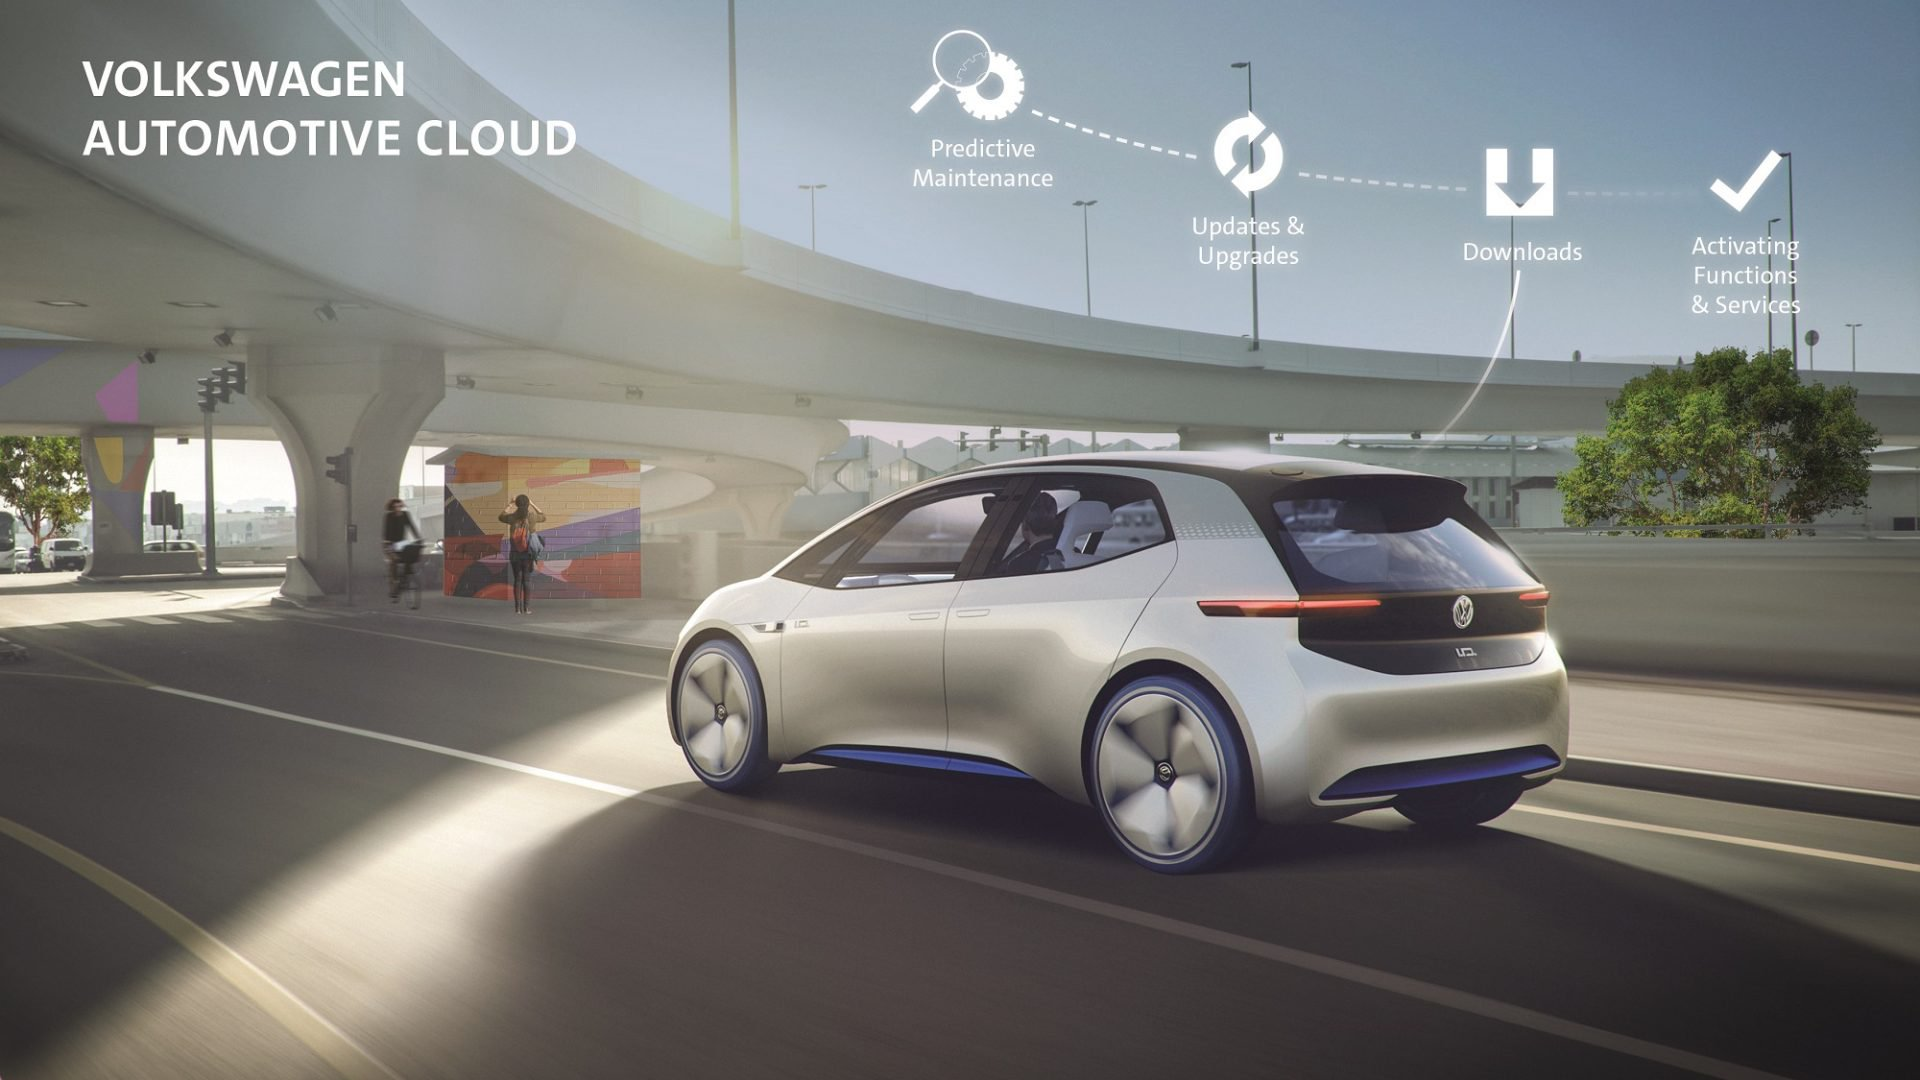 Volkswagen + Microsoft = Internet technology for a comfortable ride